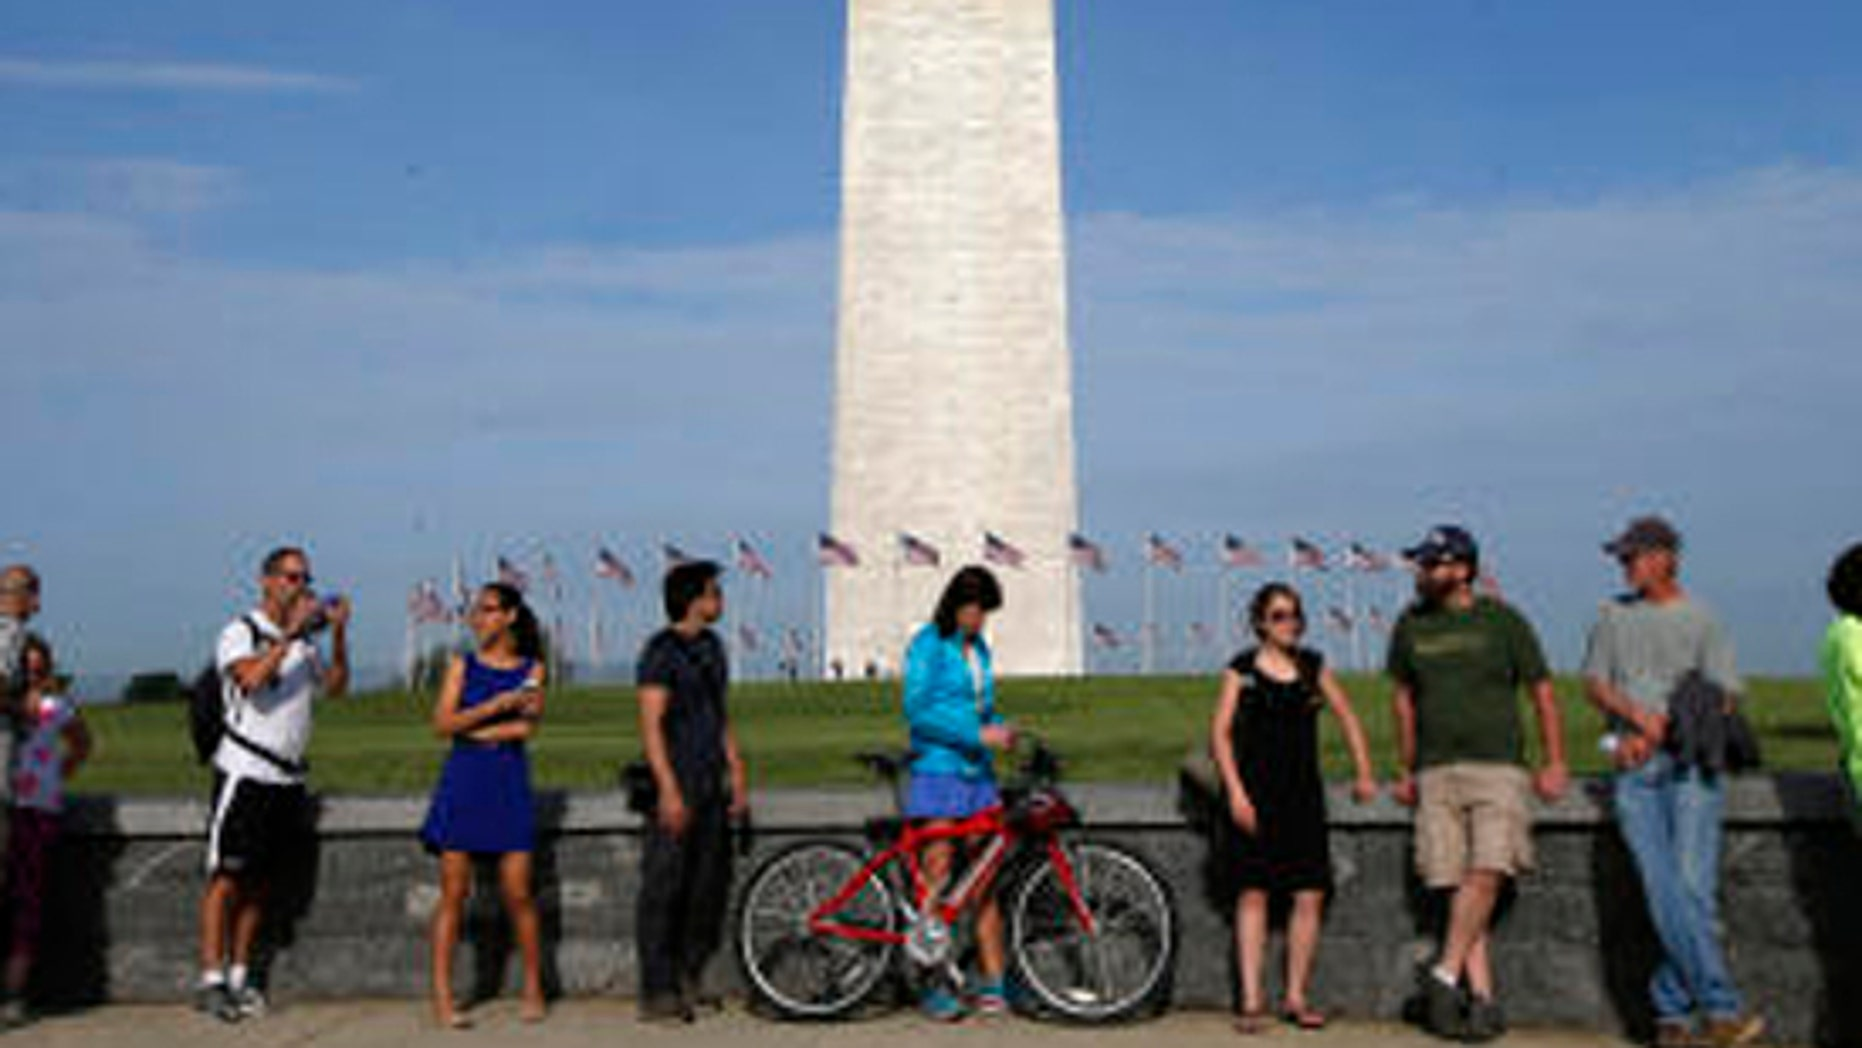 After temporary closure due to malfunctioning elevators, the Washington Monument will reopen Tuesday.